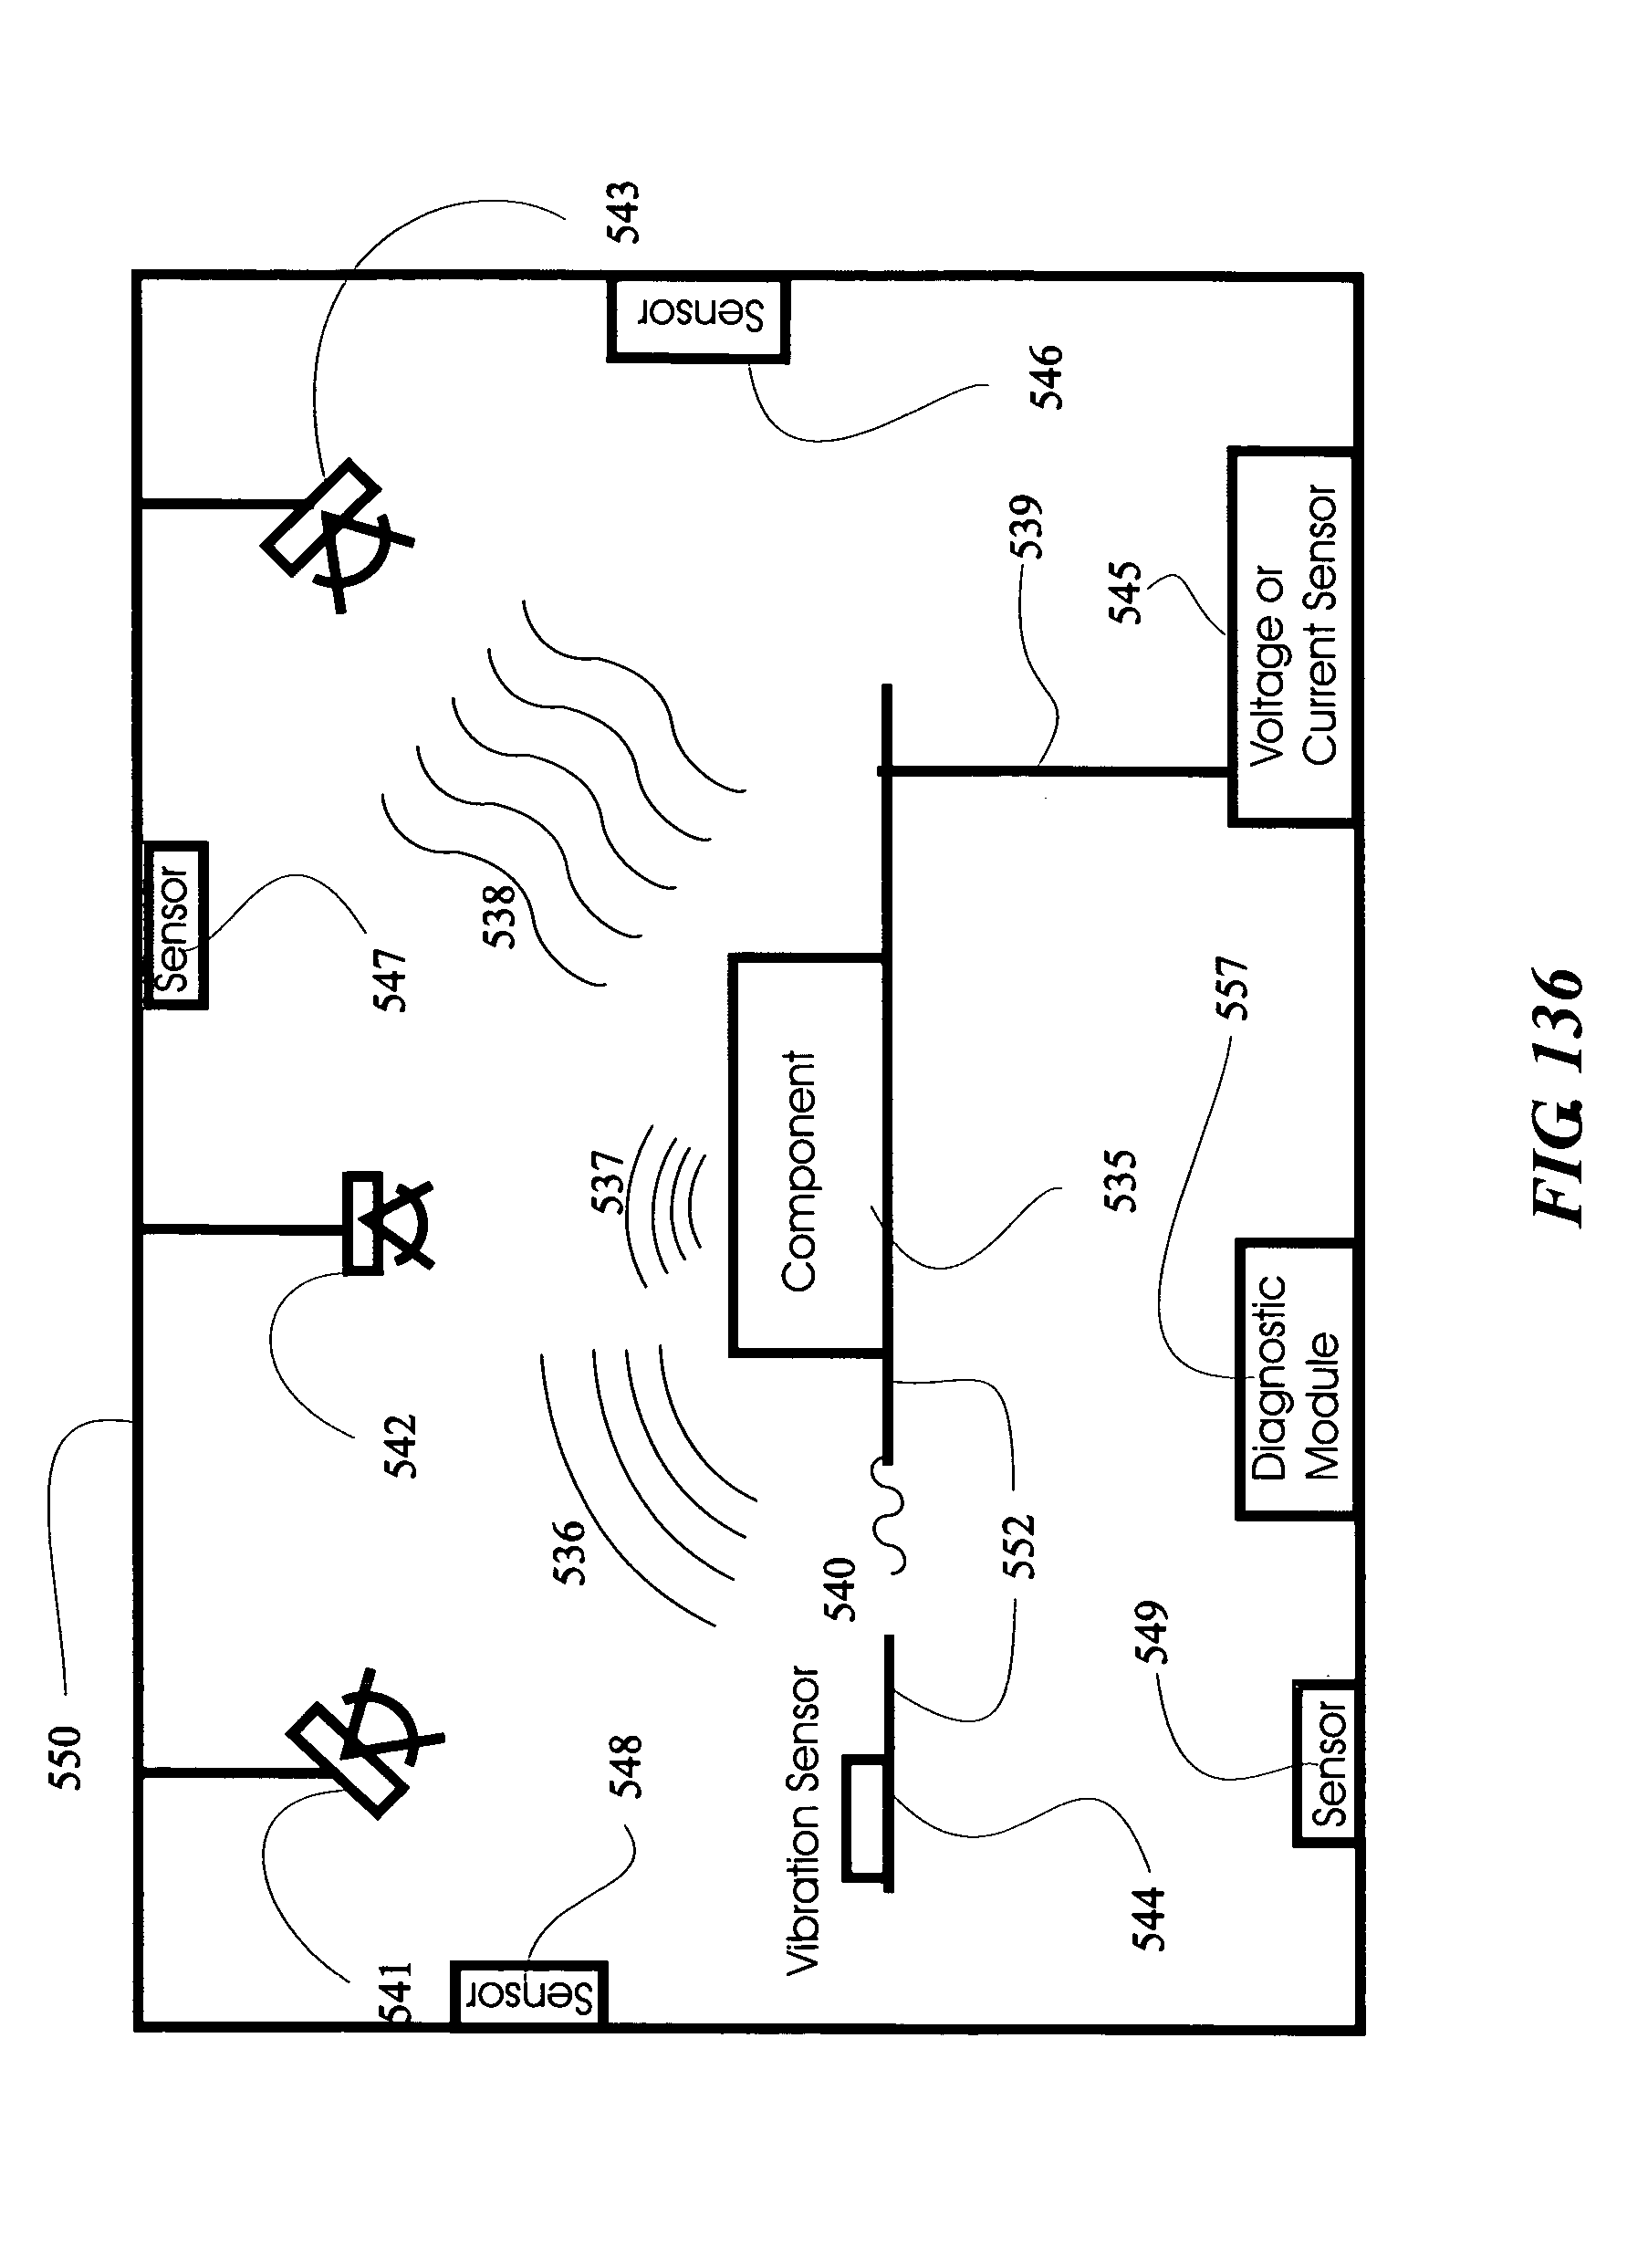 Patent Us 7164117 B2 Airbag Wiring Diagram 2009 Fusion Images